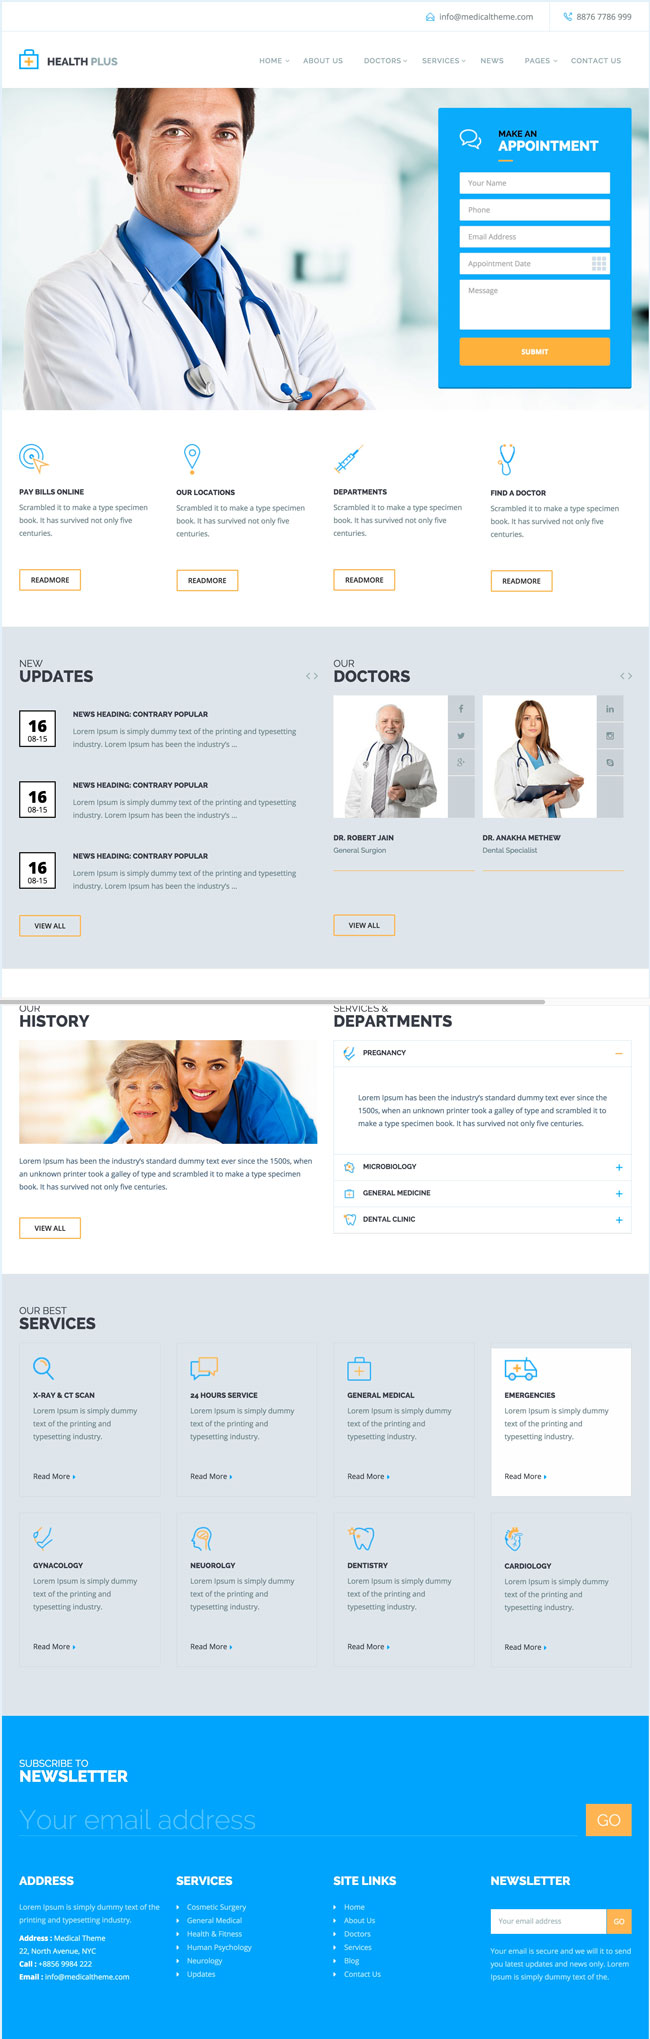 Health-Plus-Health-Medical-Wordpress-Theme